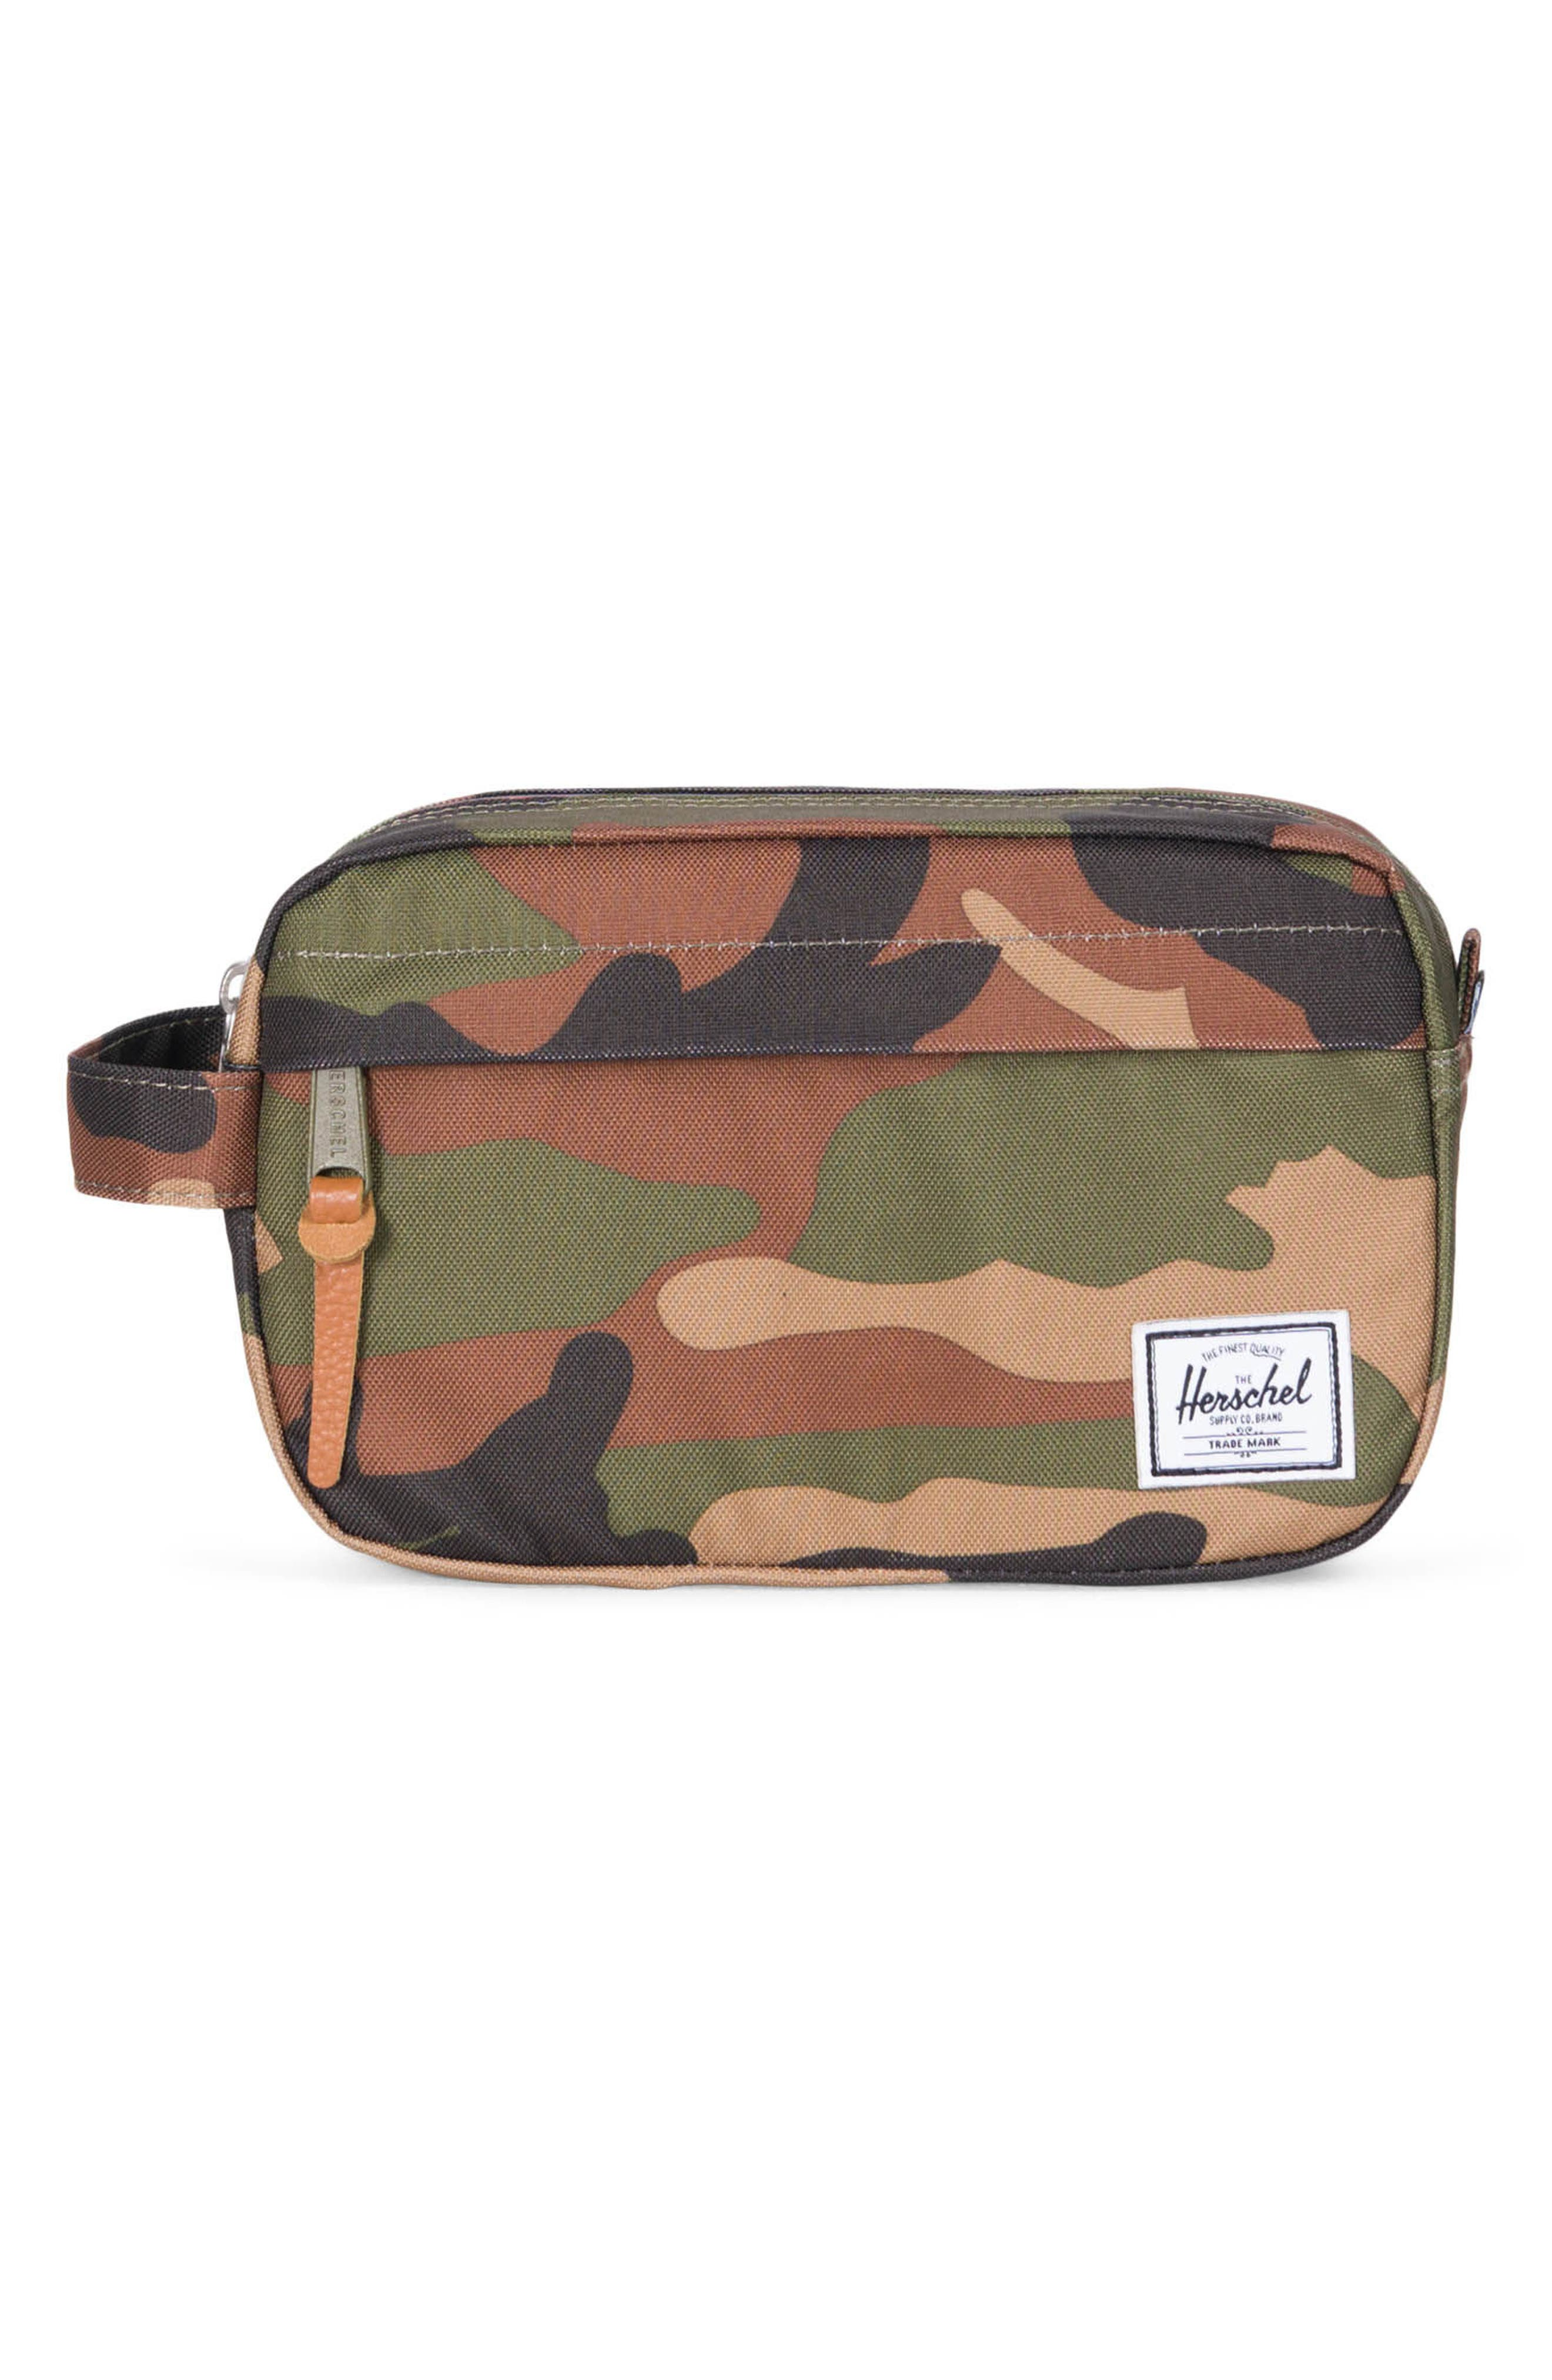 Herschel Supply Co. Carry-On Travel Kit